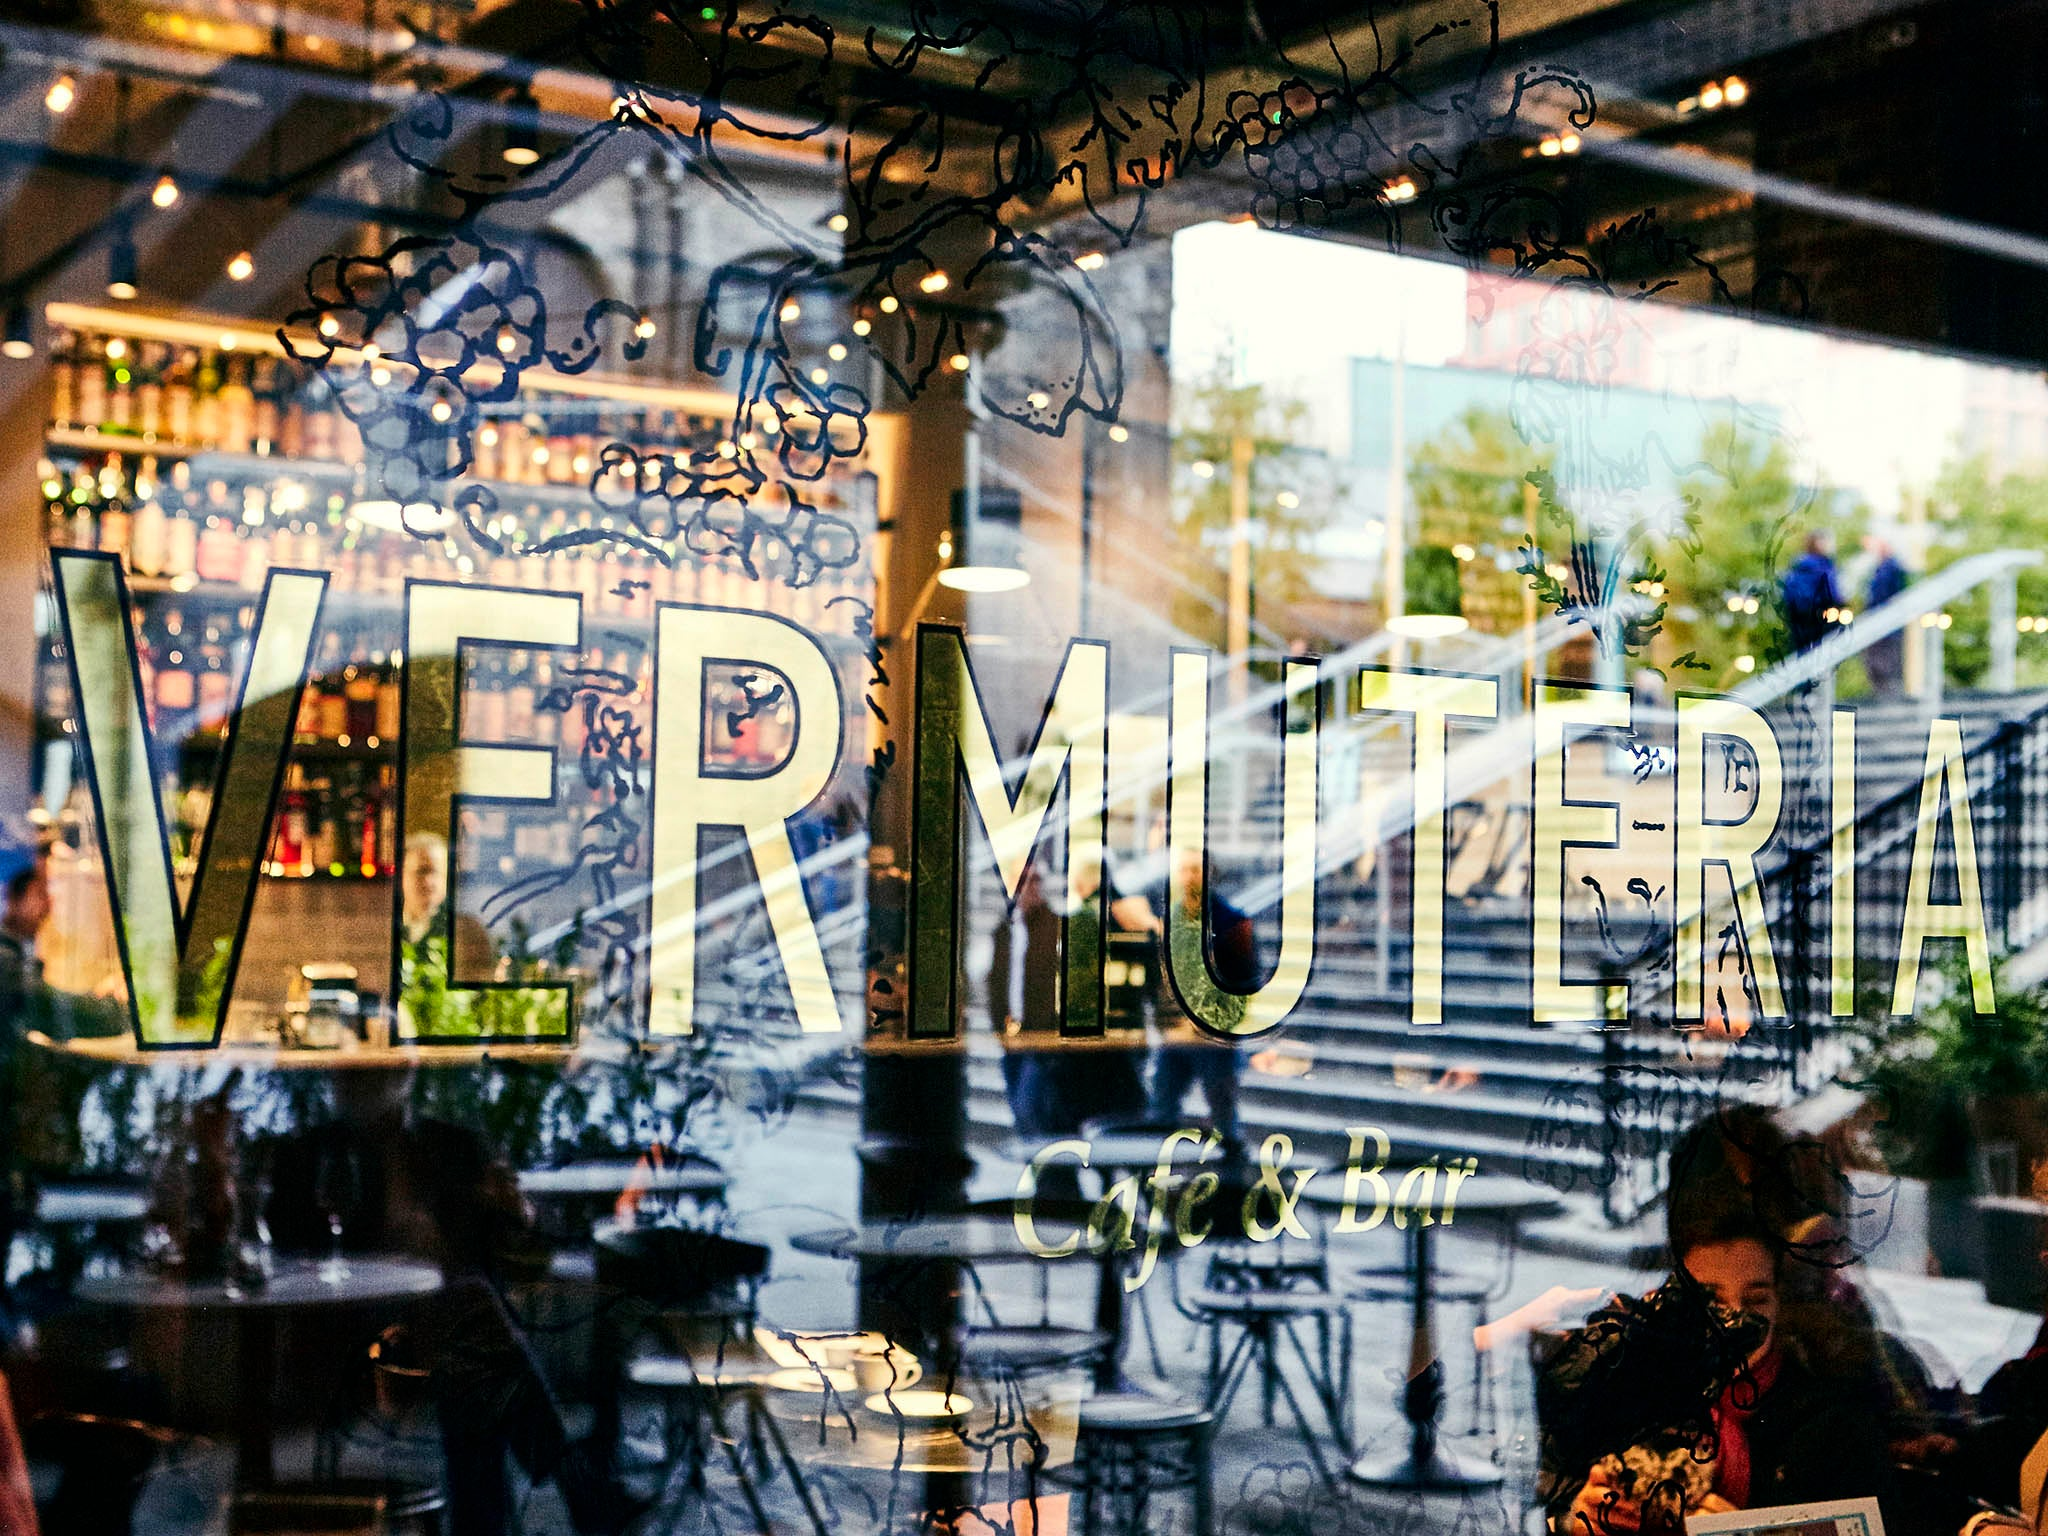 Vermuteria review: Don't judge a restaurant by its surroundings 1